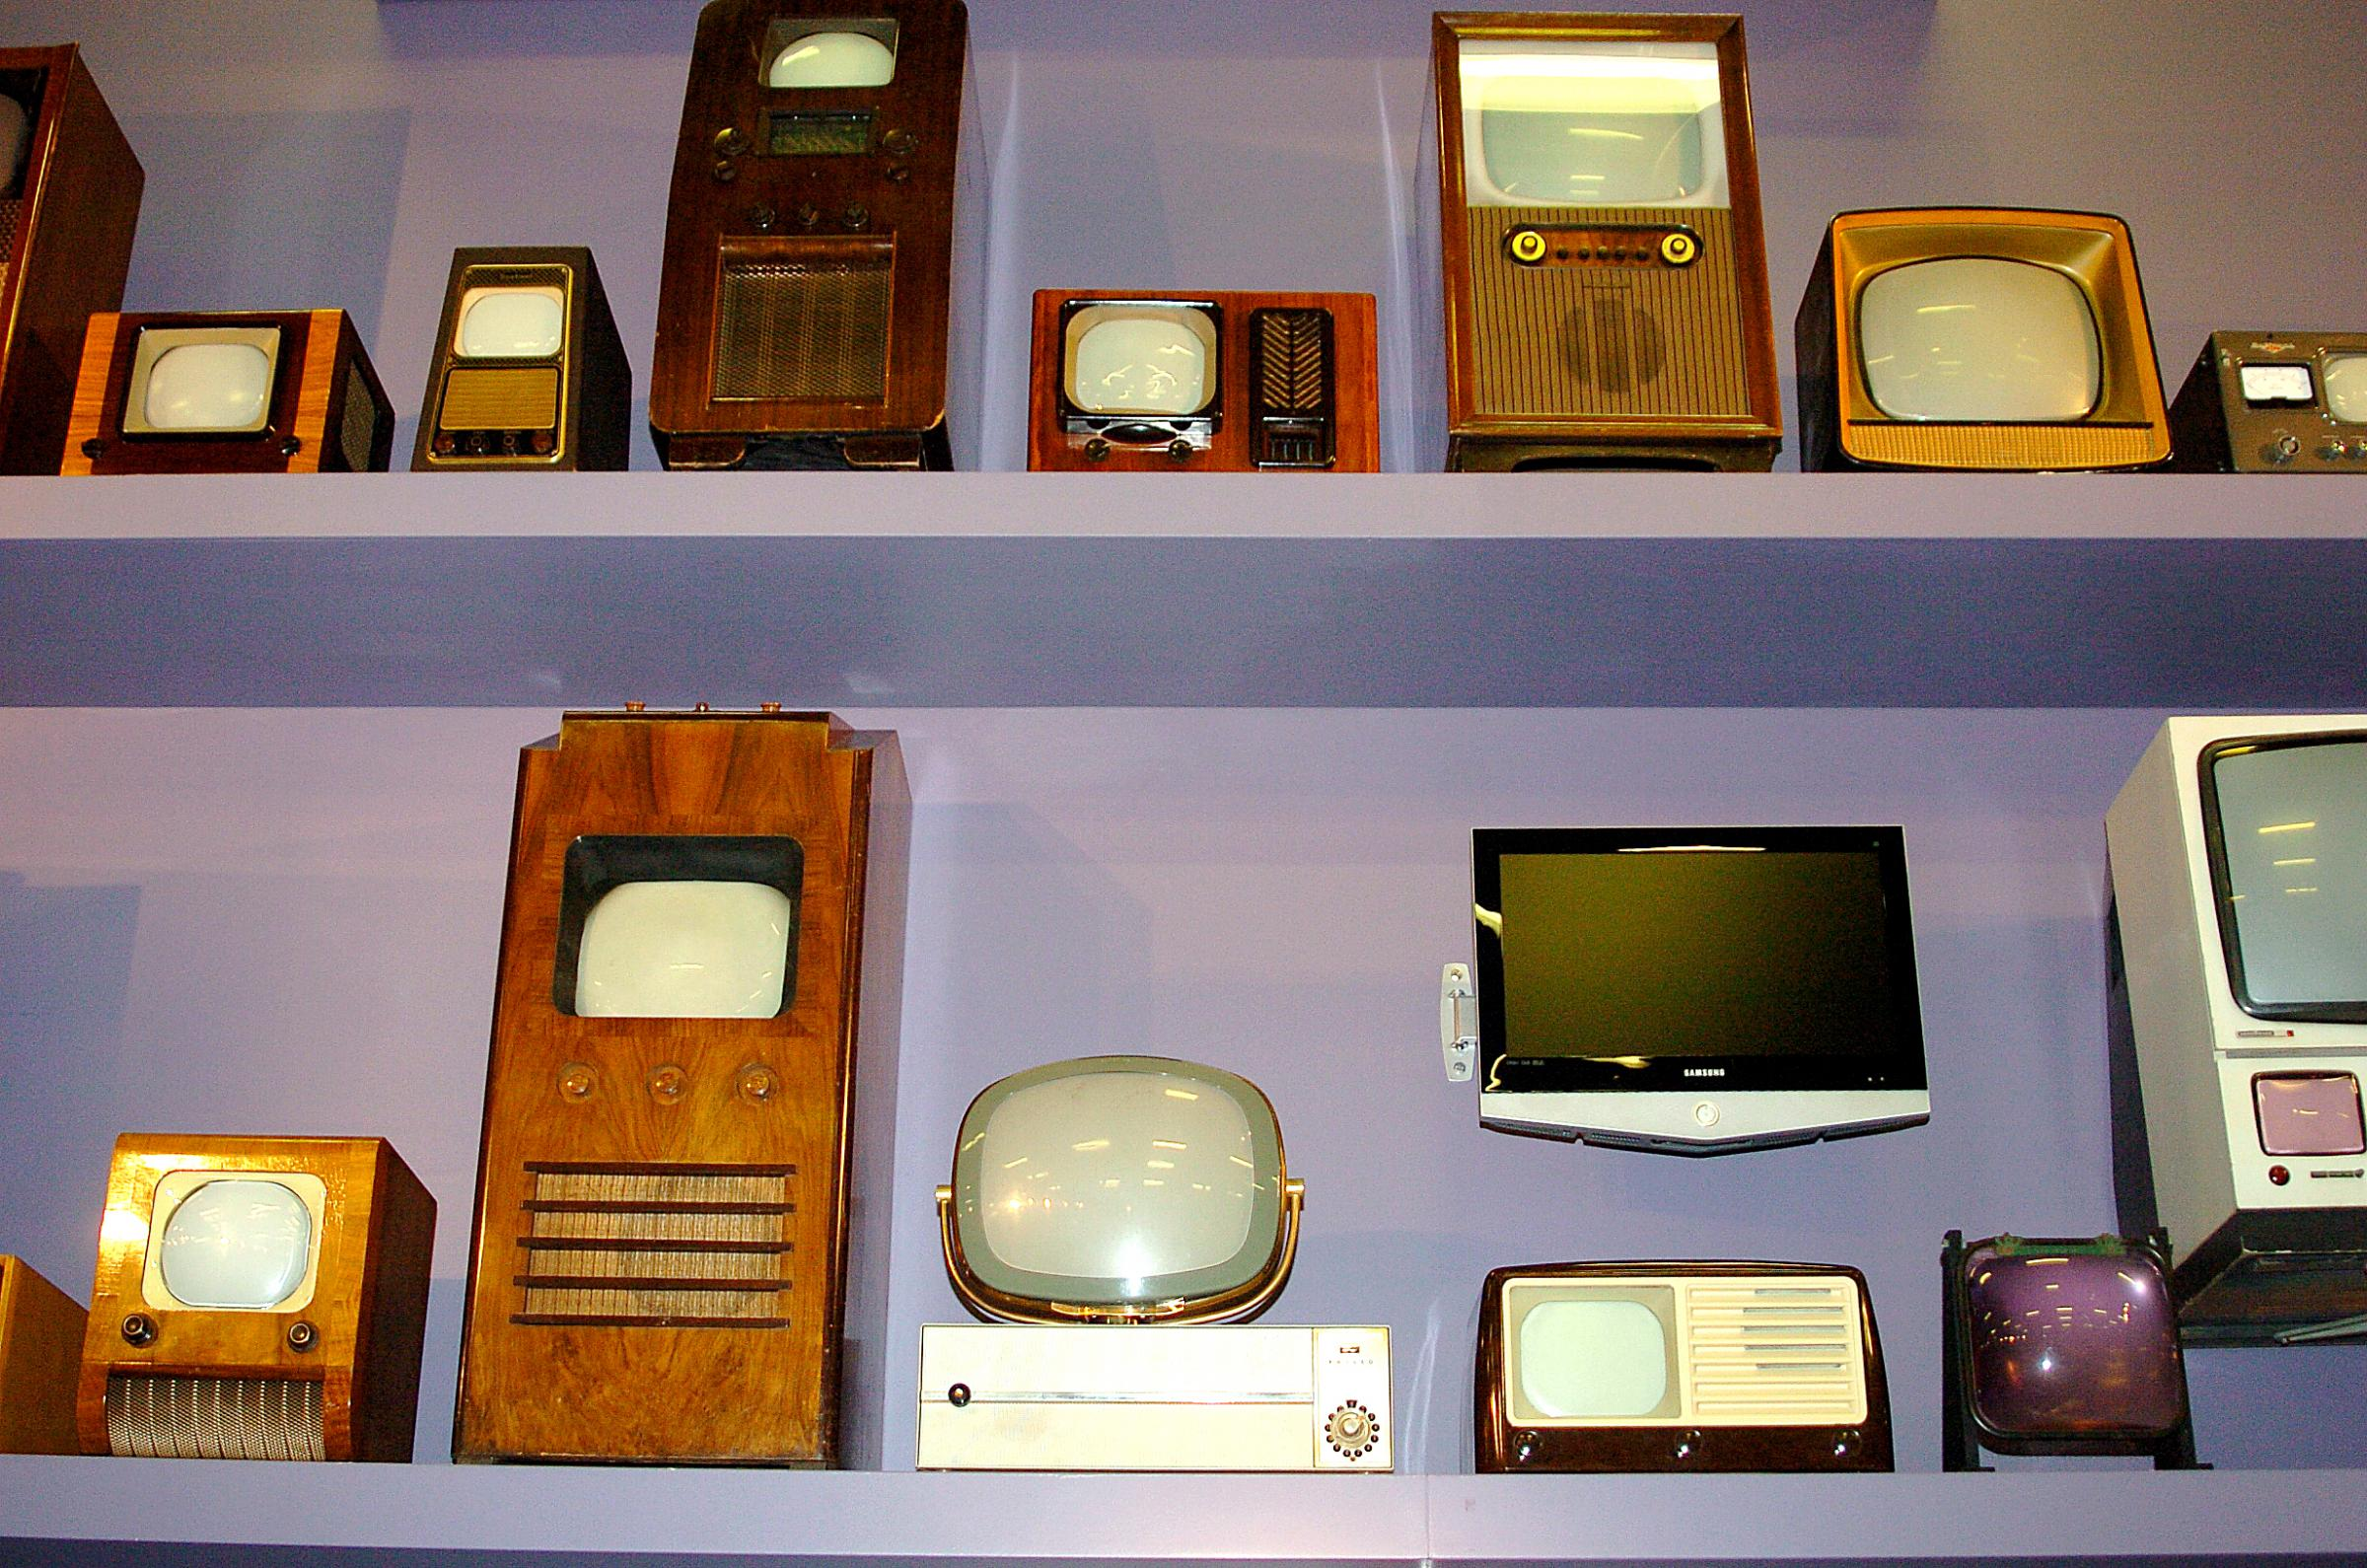 Television viewing habits have changed over the years